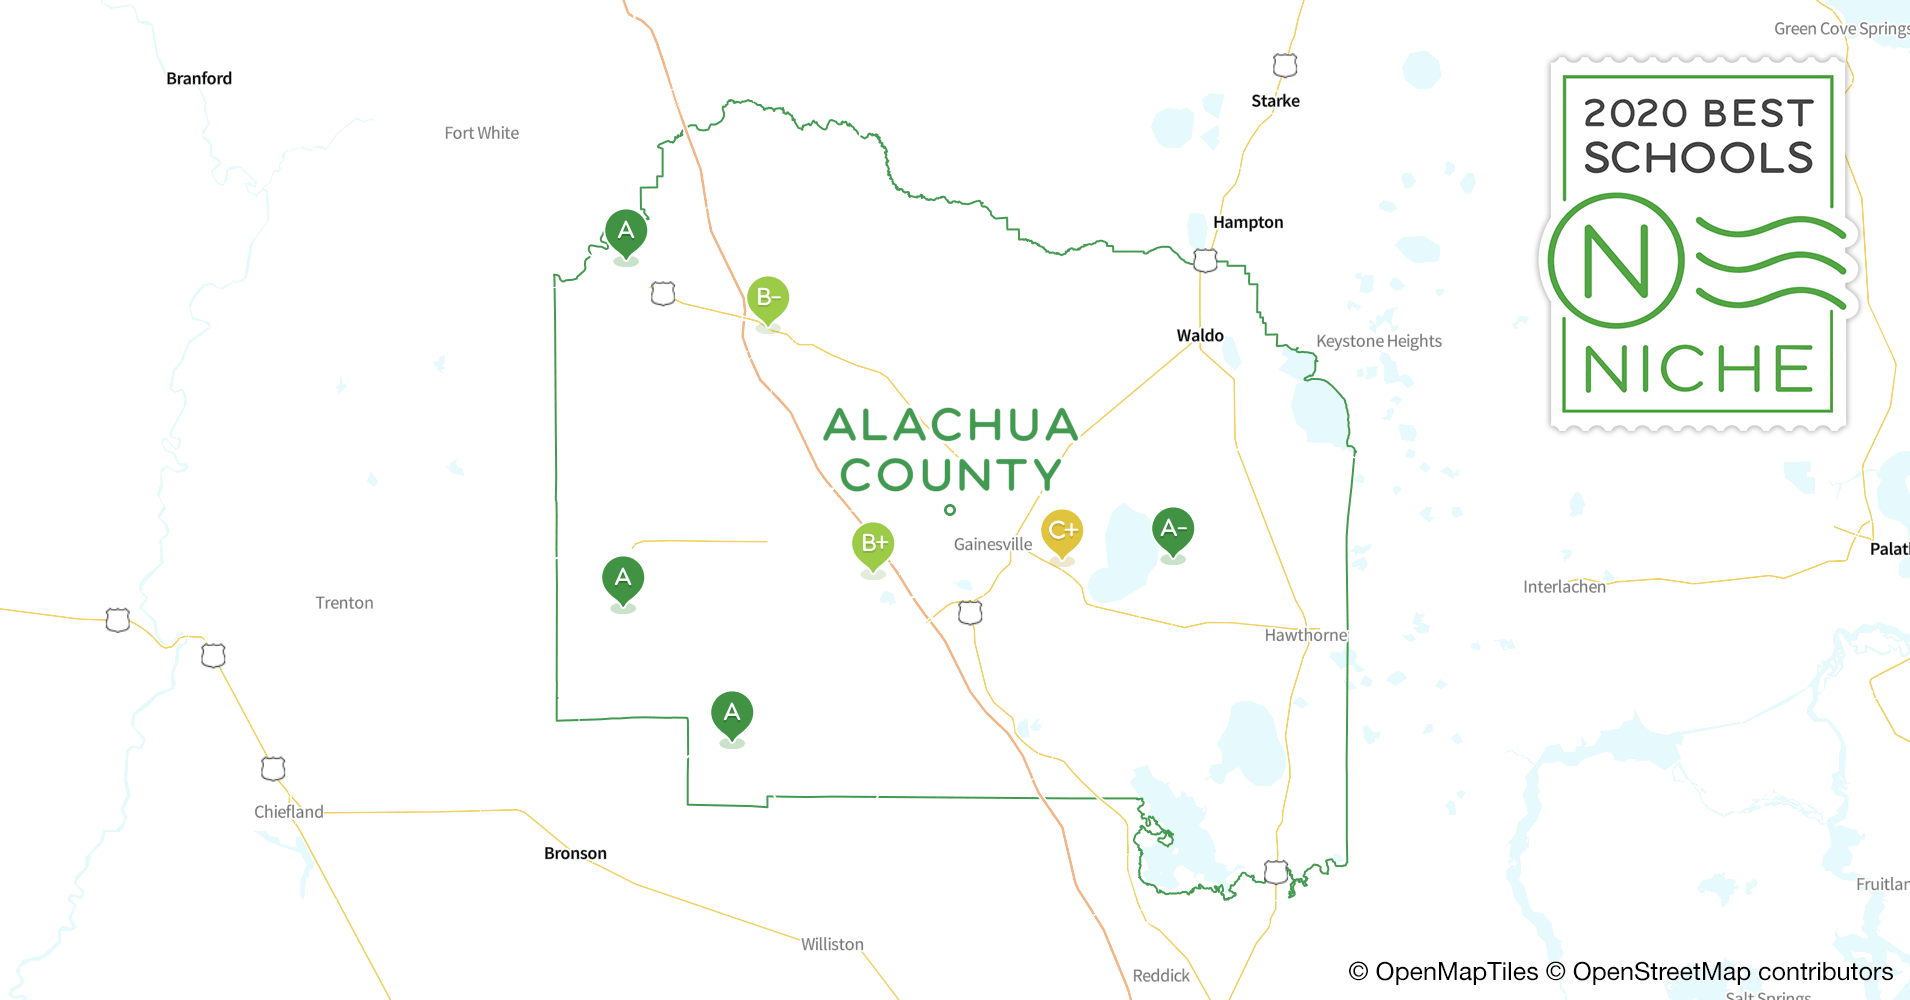 2020 Best Public High s in Alachua County, FL - Niche Map Of Alachua County on map of volusia county, map of pasco county, map of okaloosa county, map of polk county, map of simpson county, map of wauchula county, map of lafayette county, map of marion county, map of st. lucie county, map of manatee county, map of duval county, map of gadsden county, map of dade county public schools, map of martin county, map of glades county, map of addison county, map of washington county, map of jackson county, map of st. johns county, map of appanoose county,